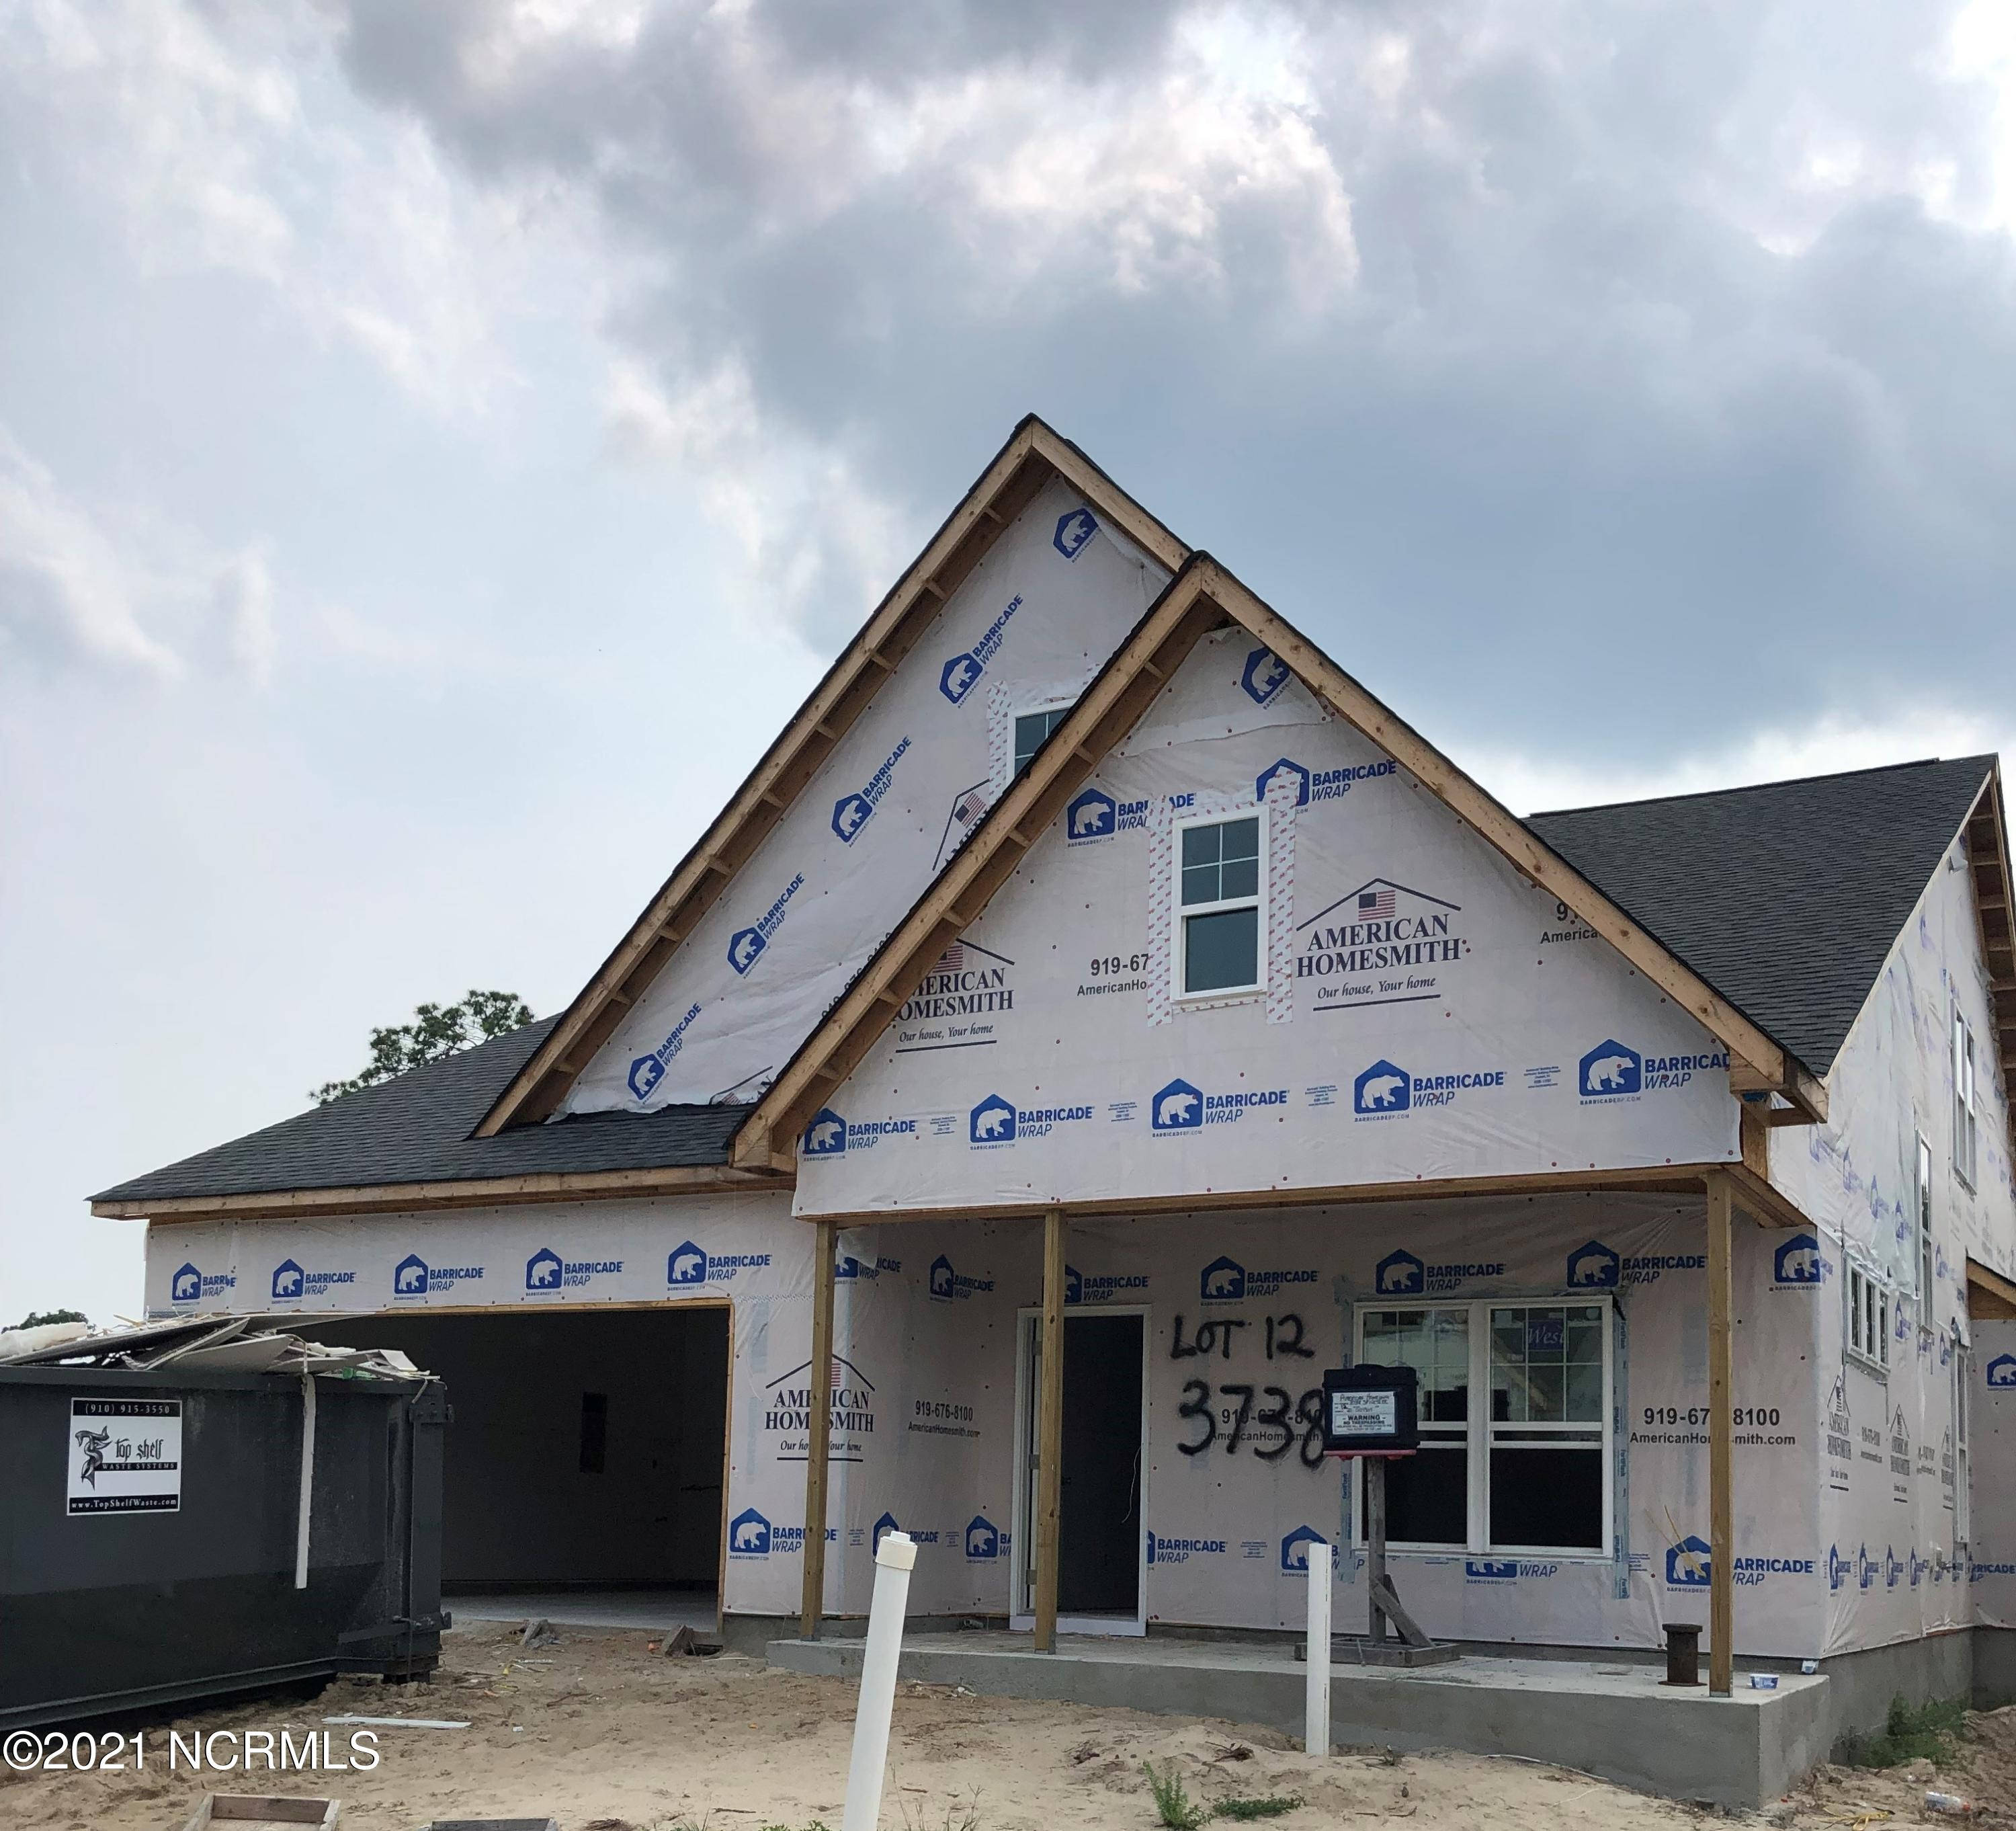 3738 Spicetree Drive, Wilmington, North Carolina 28412, 4 Bedrooms Bedrooms, 8 Rooms Rooms,3 BathroomsBathrooms,Single family residence,For sale,Spicetree,100285429